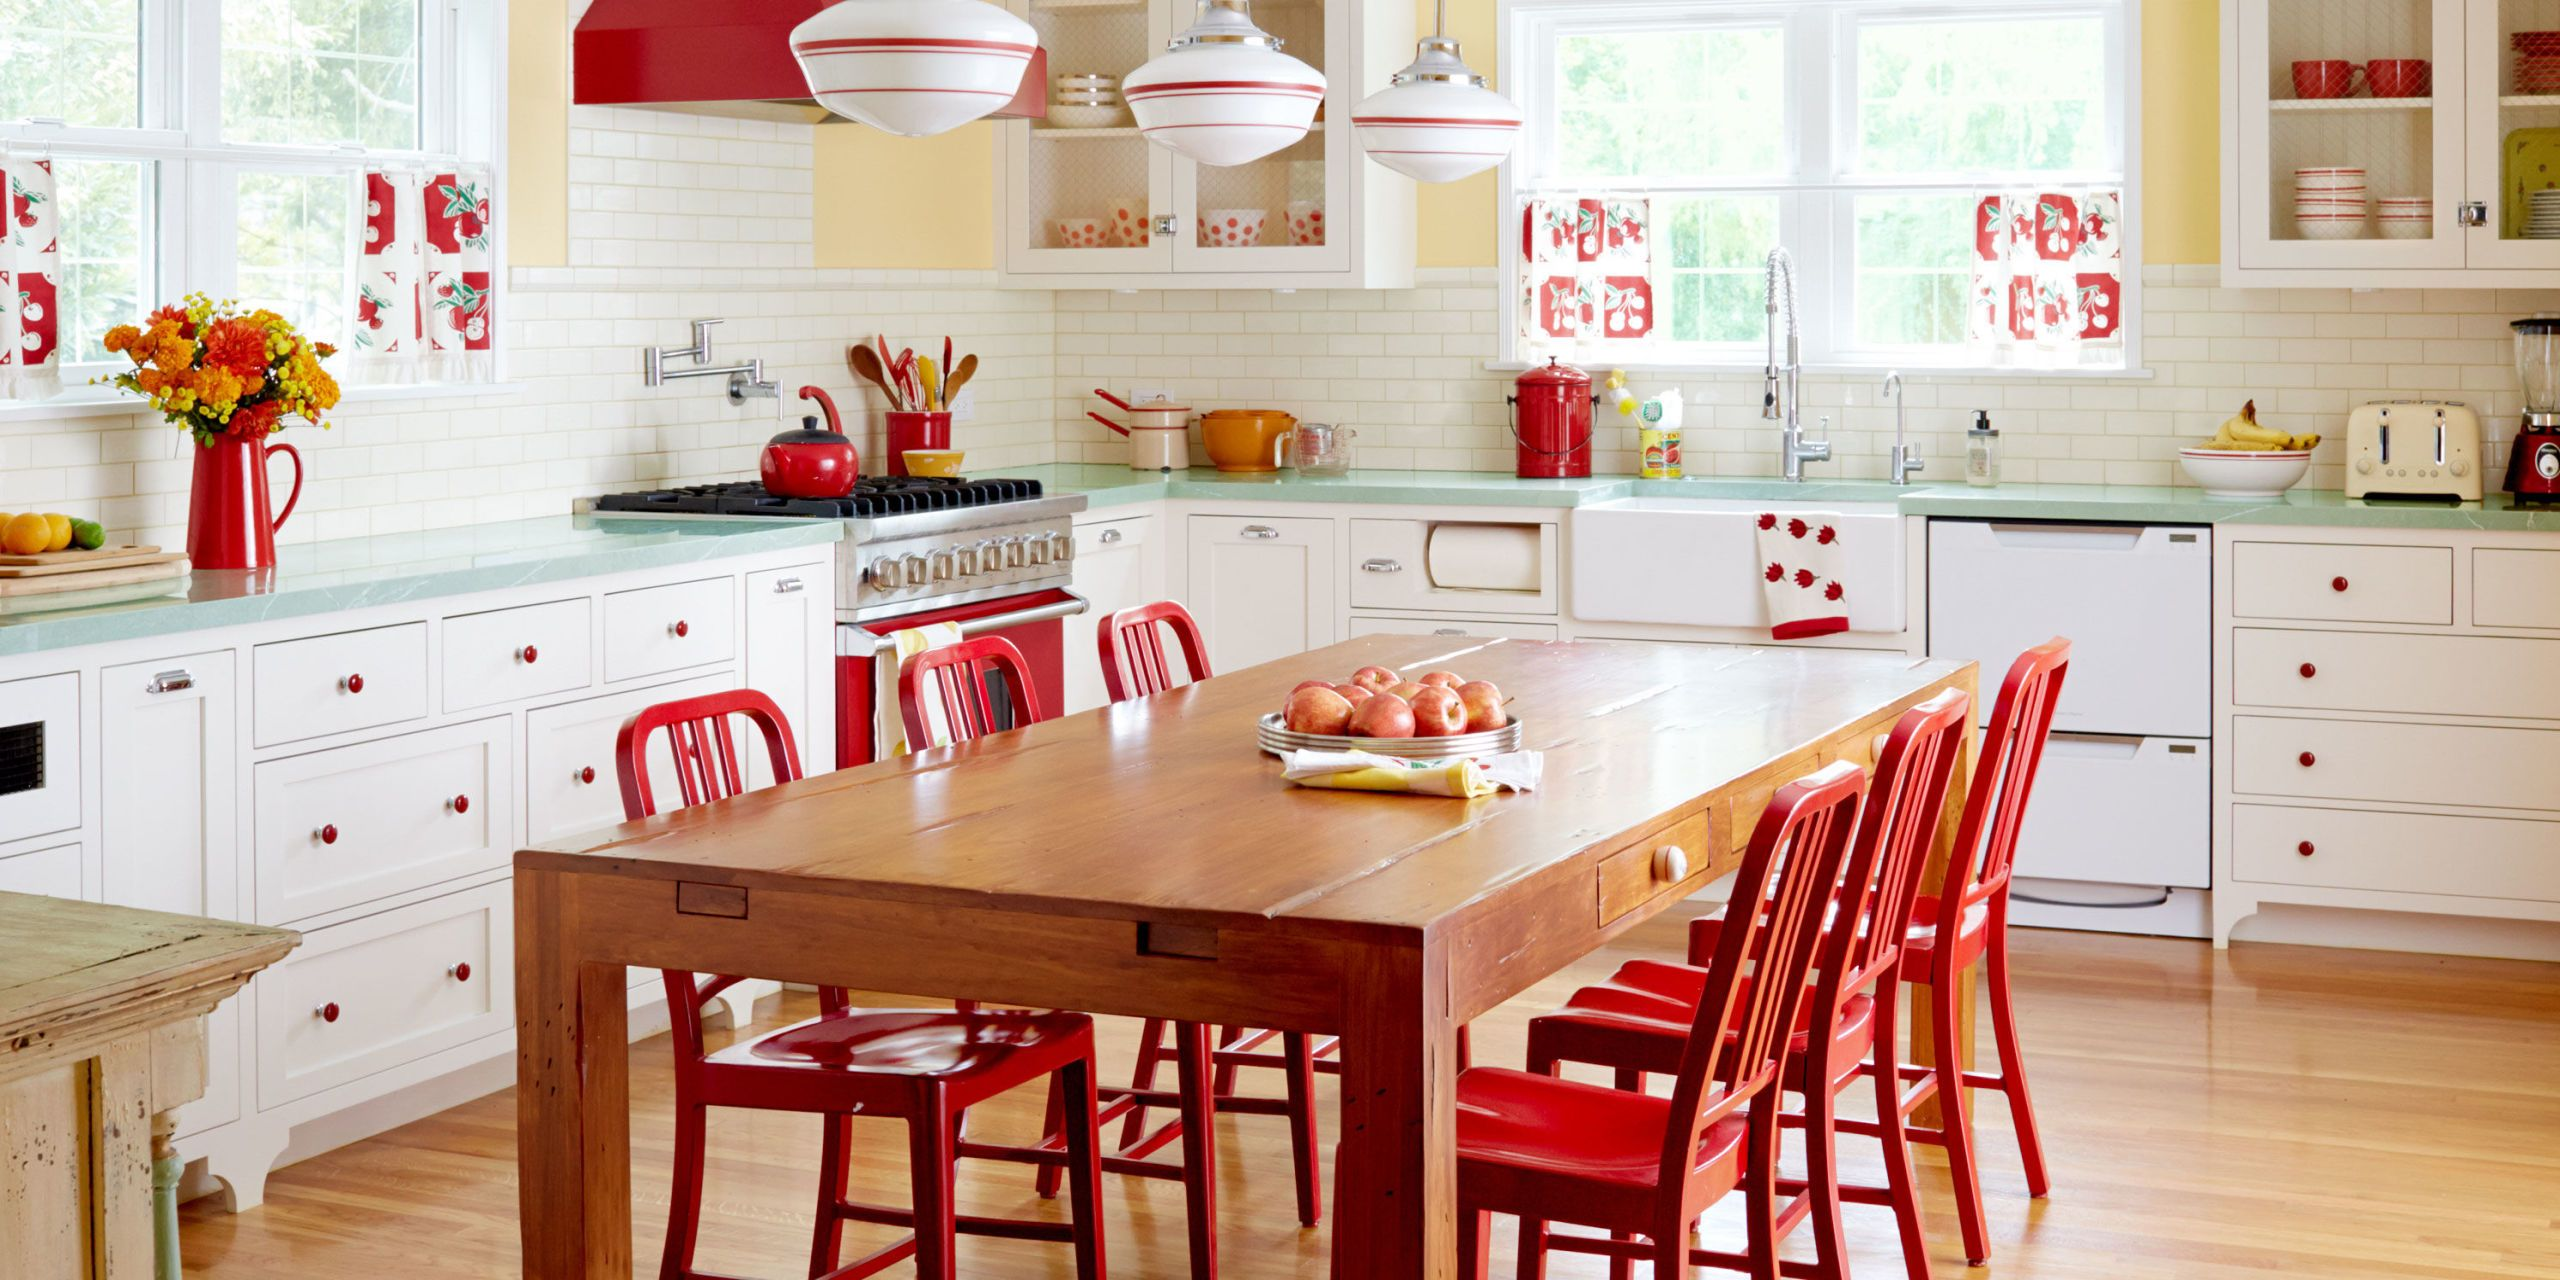 Genial It May Look Retro, But This Brand New Space Is Full Of Surprisingly Fresh  Ideas. Read On For A Heaping Helping Of Sunny Colors, Cheerful Accentsu2014and  The ...